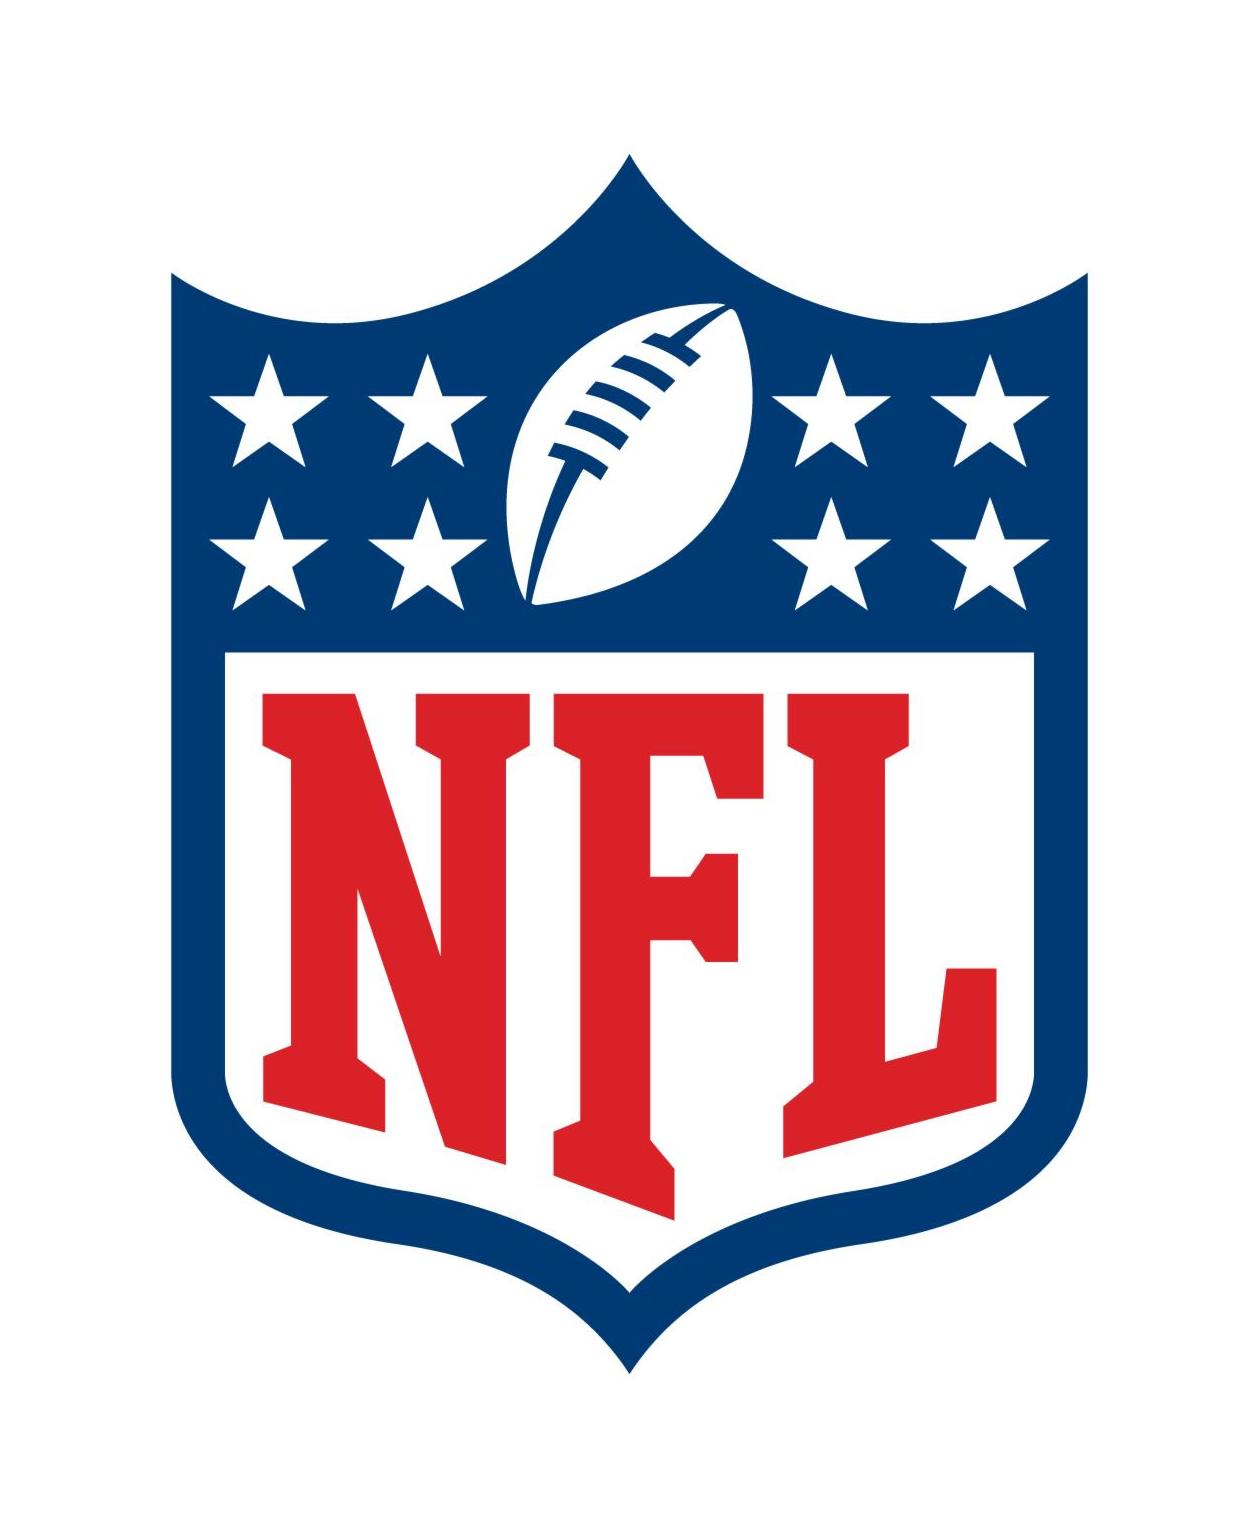 Management Leadership for Tomorrow Partner Logo for the National Football League